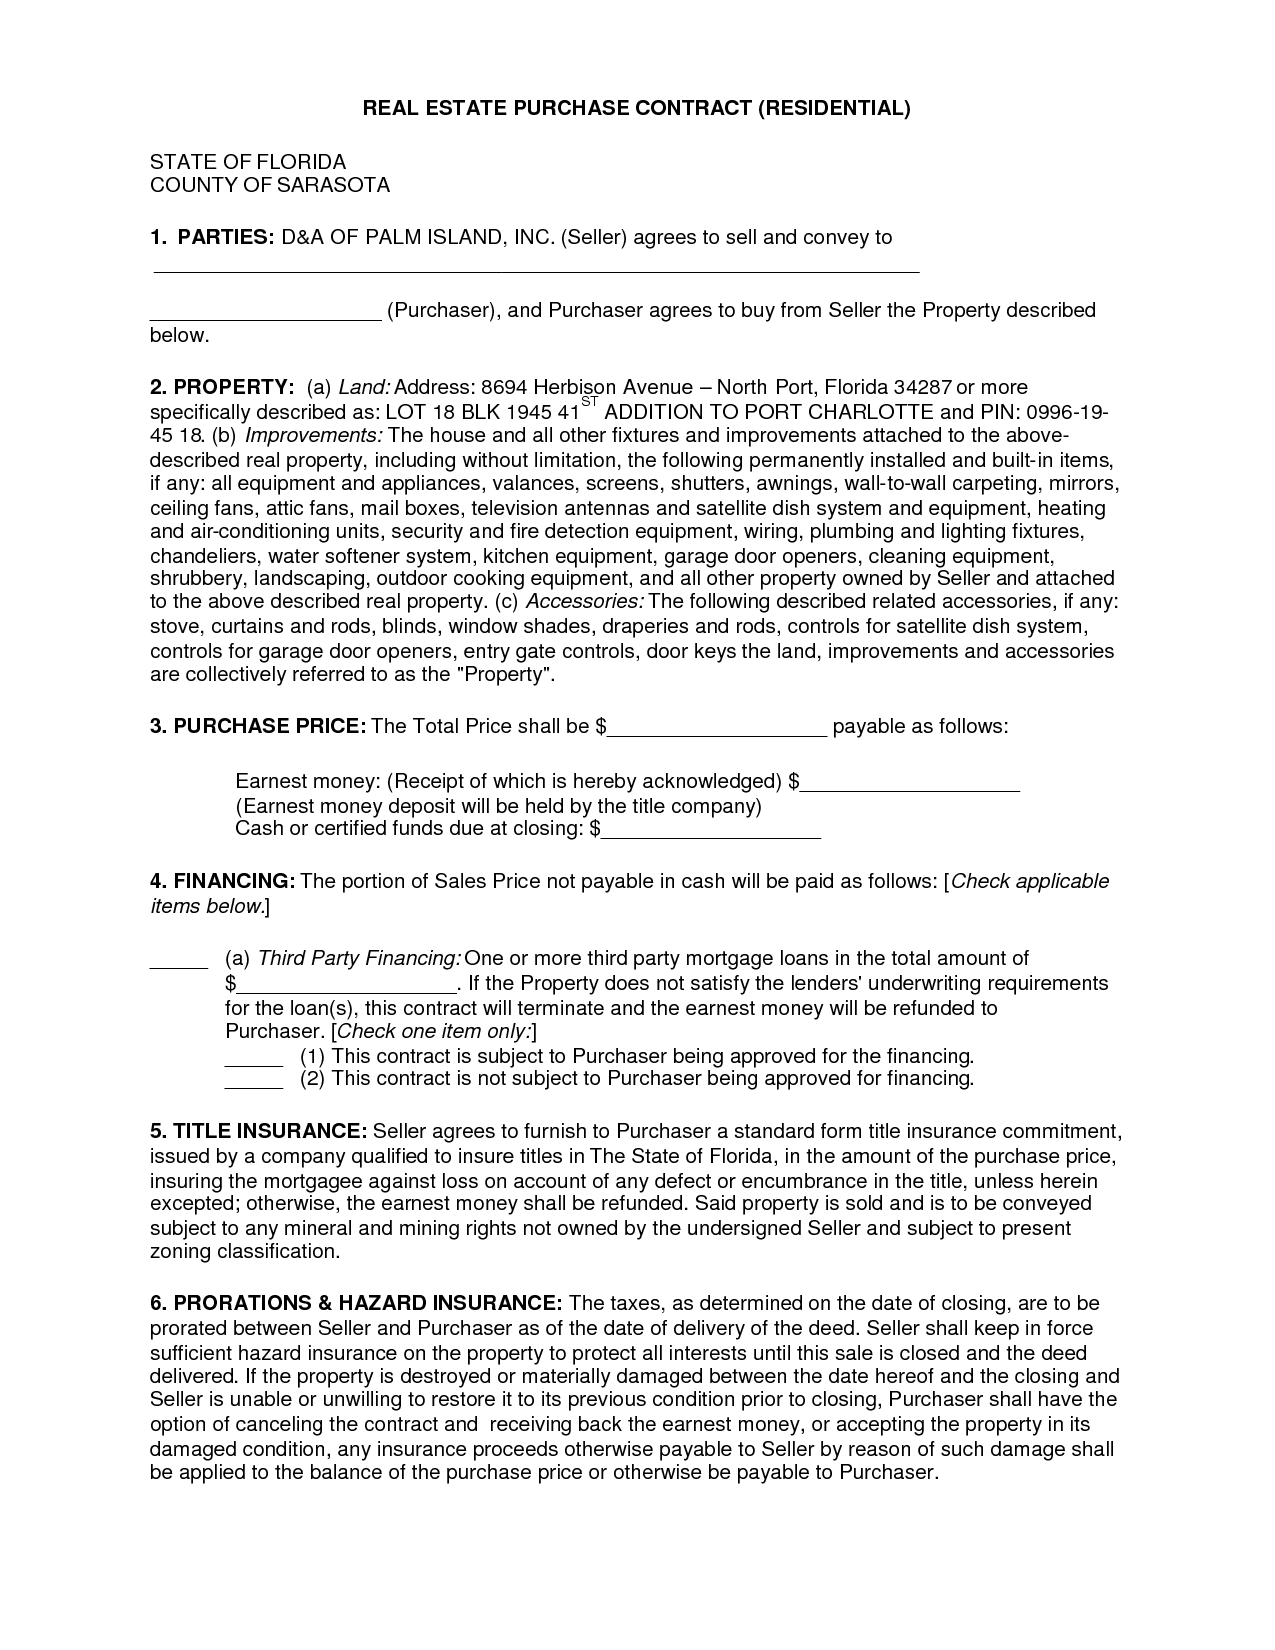 purchase and sale agreement template free  sales-agreement-template-free- ... - free real estate purchase ...